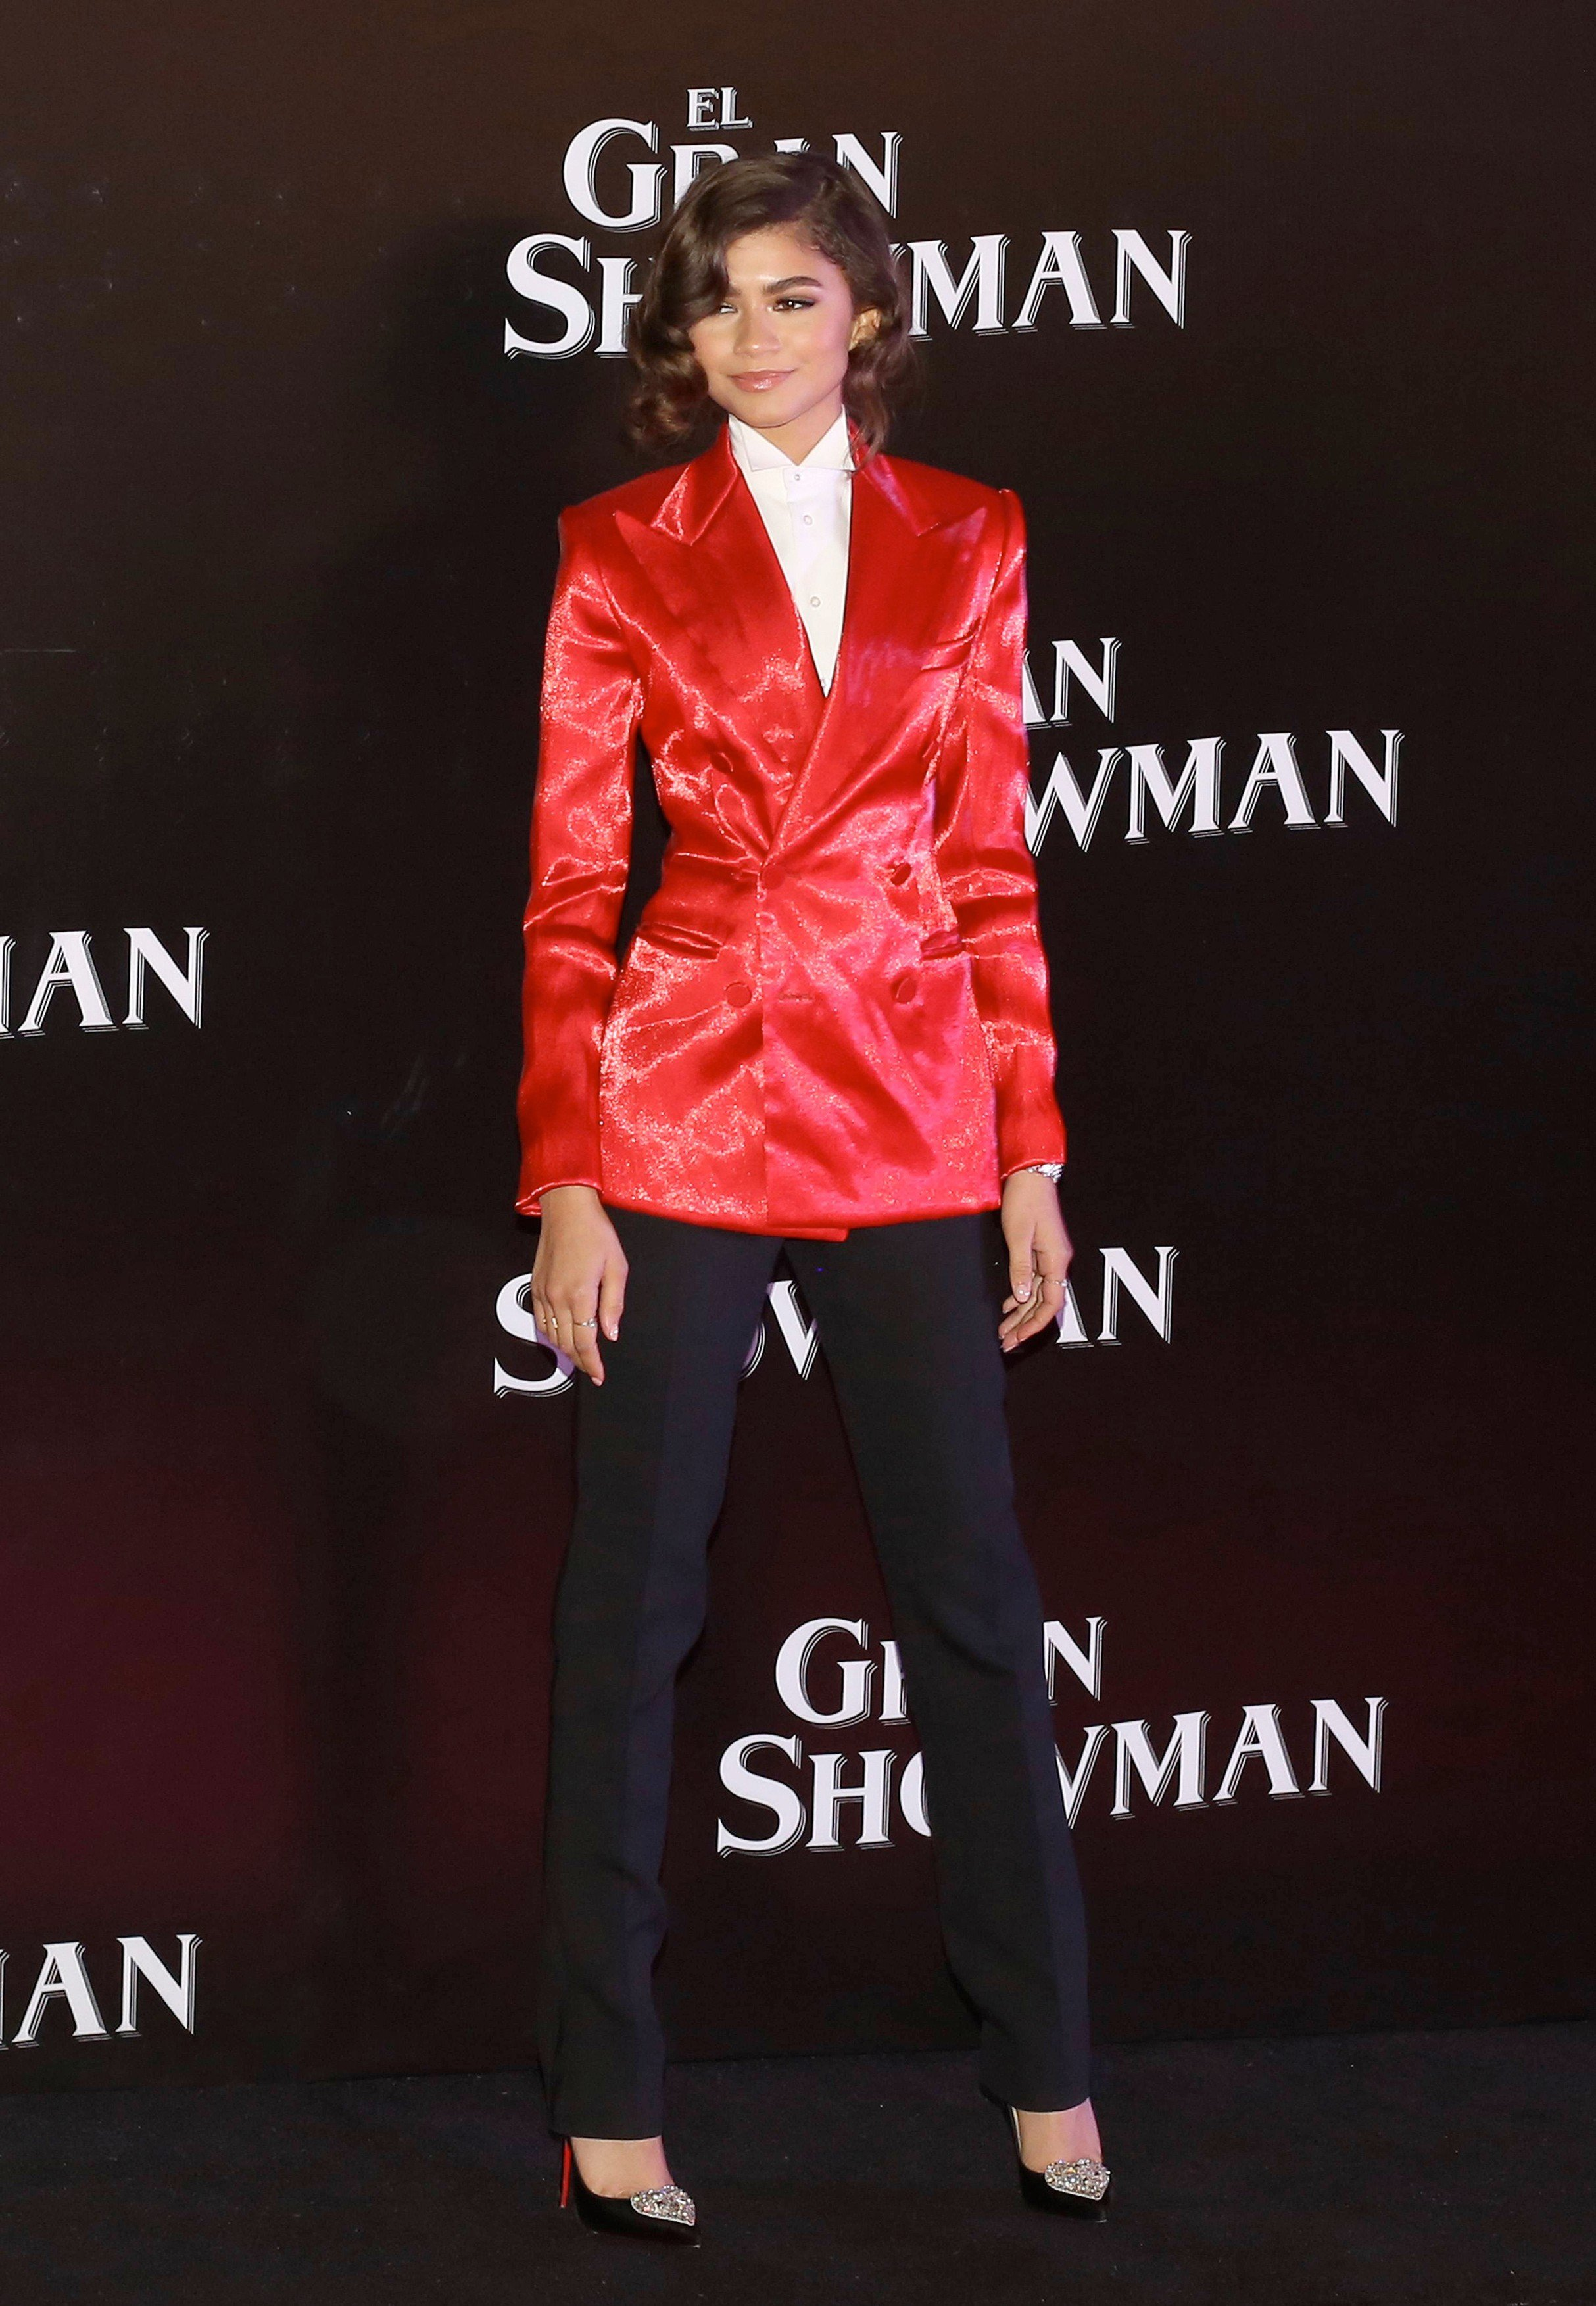 Zendaya at the premiere of The Great Showman in cinepolis Plaza Oasis CDMX Mexico  .CODE: MALLAM Mexico DF, 13 December 2017. HUGH JACKMAN AND ZENDAYA AT THE MEXICAN PREMIER OF THE GREAT SHOWMAN., Image: 357816062, License: Rights-managed, Restrictions: , Model Release: no, Credit line: Profimedia, Look Press Agency